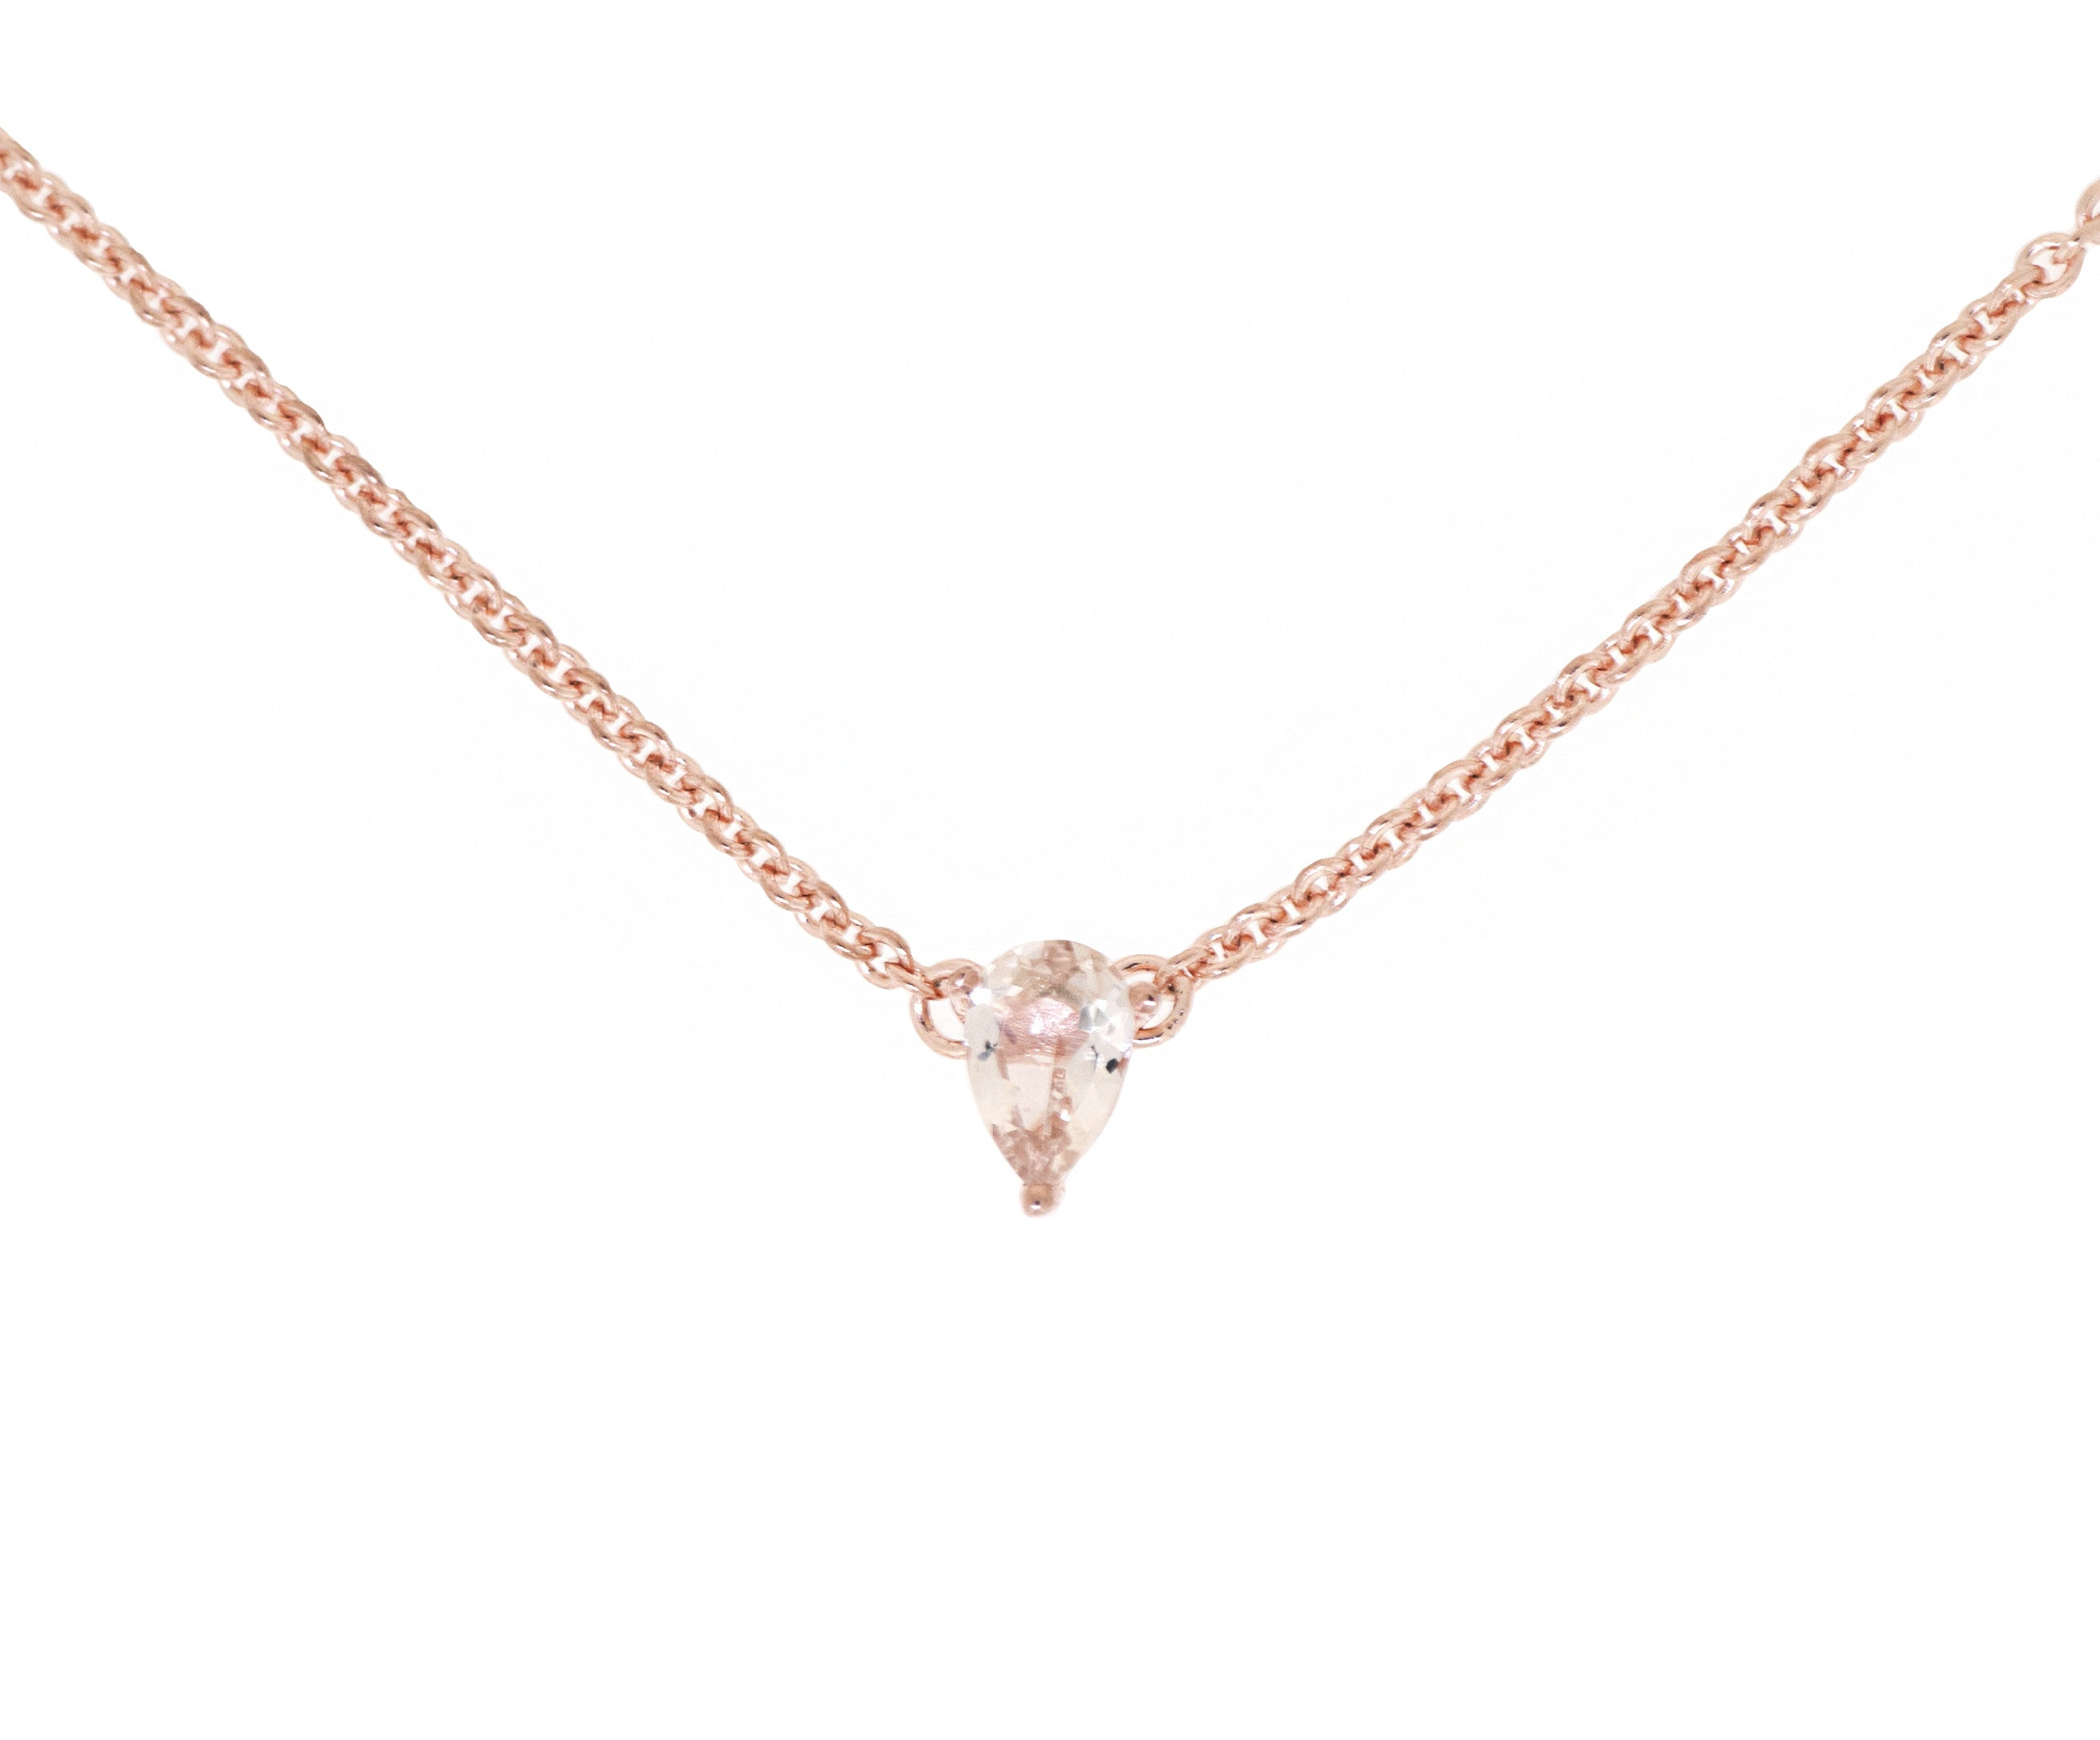 necklace cts and diamond pink light products karats gold rose morganite rare find carats pendant